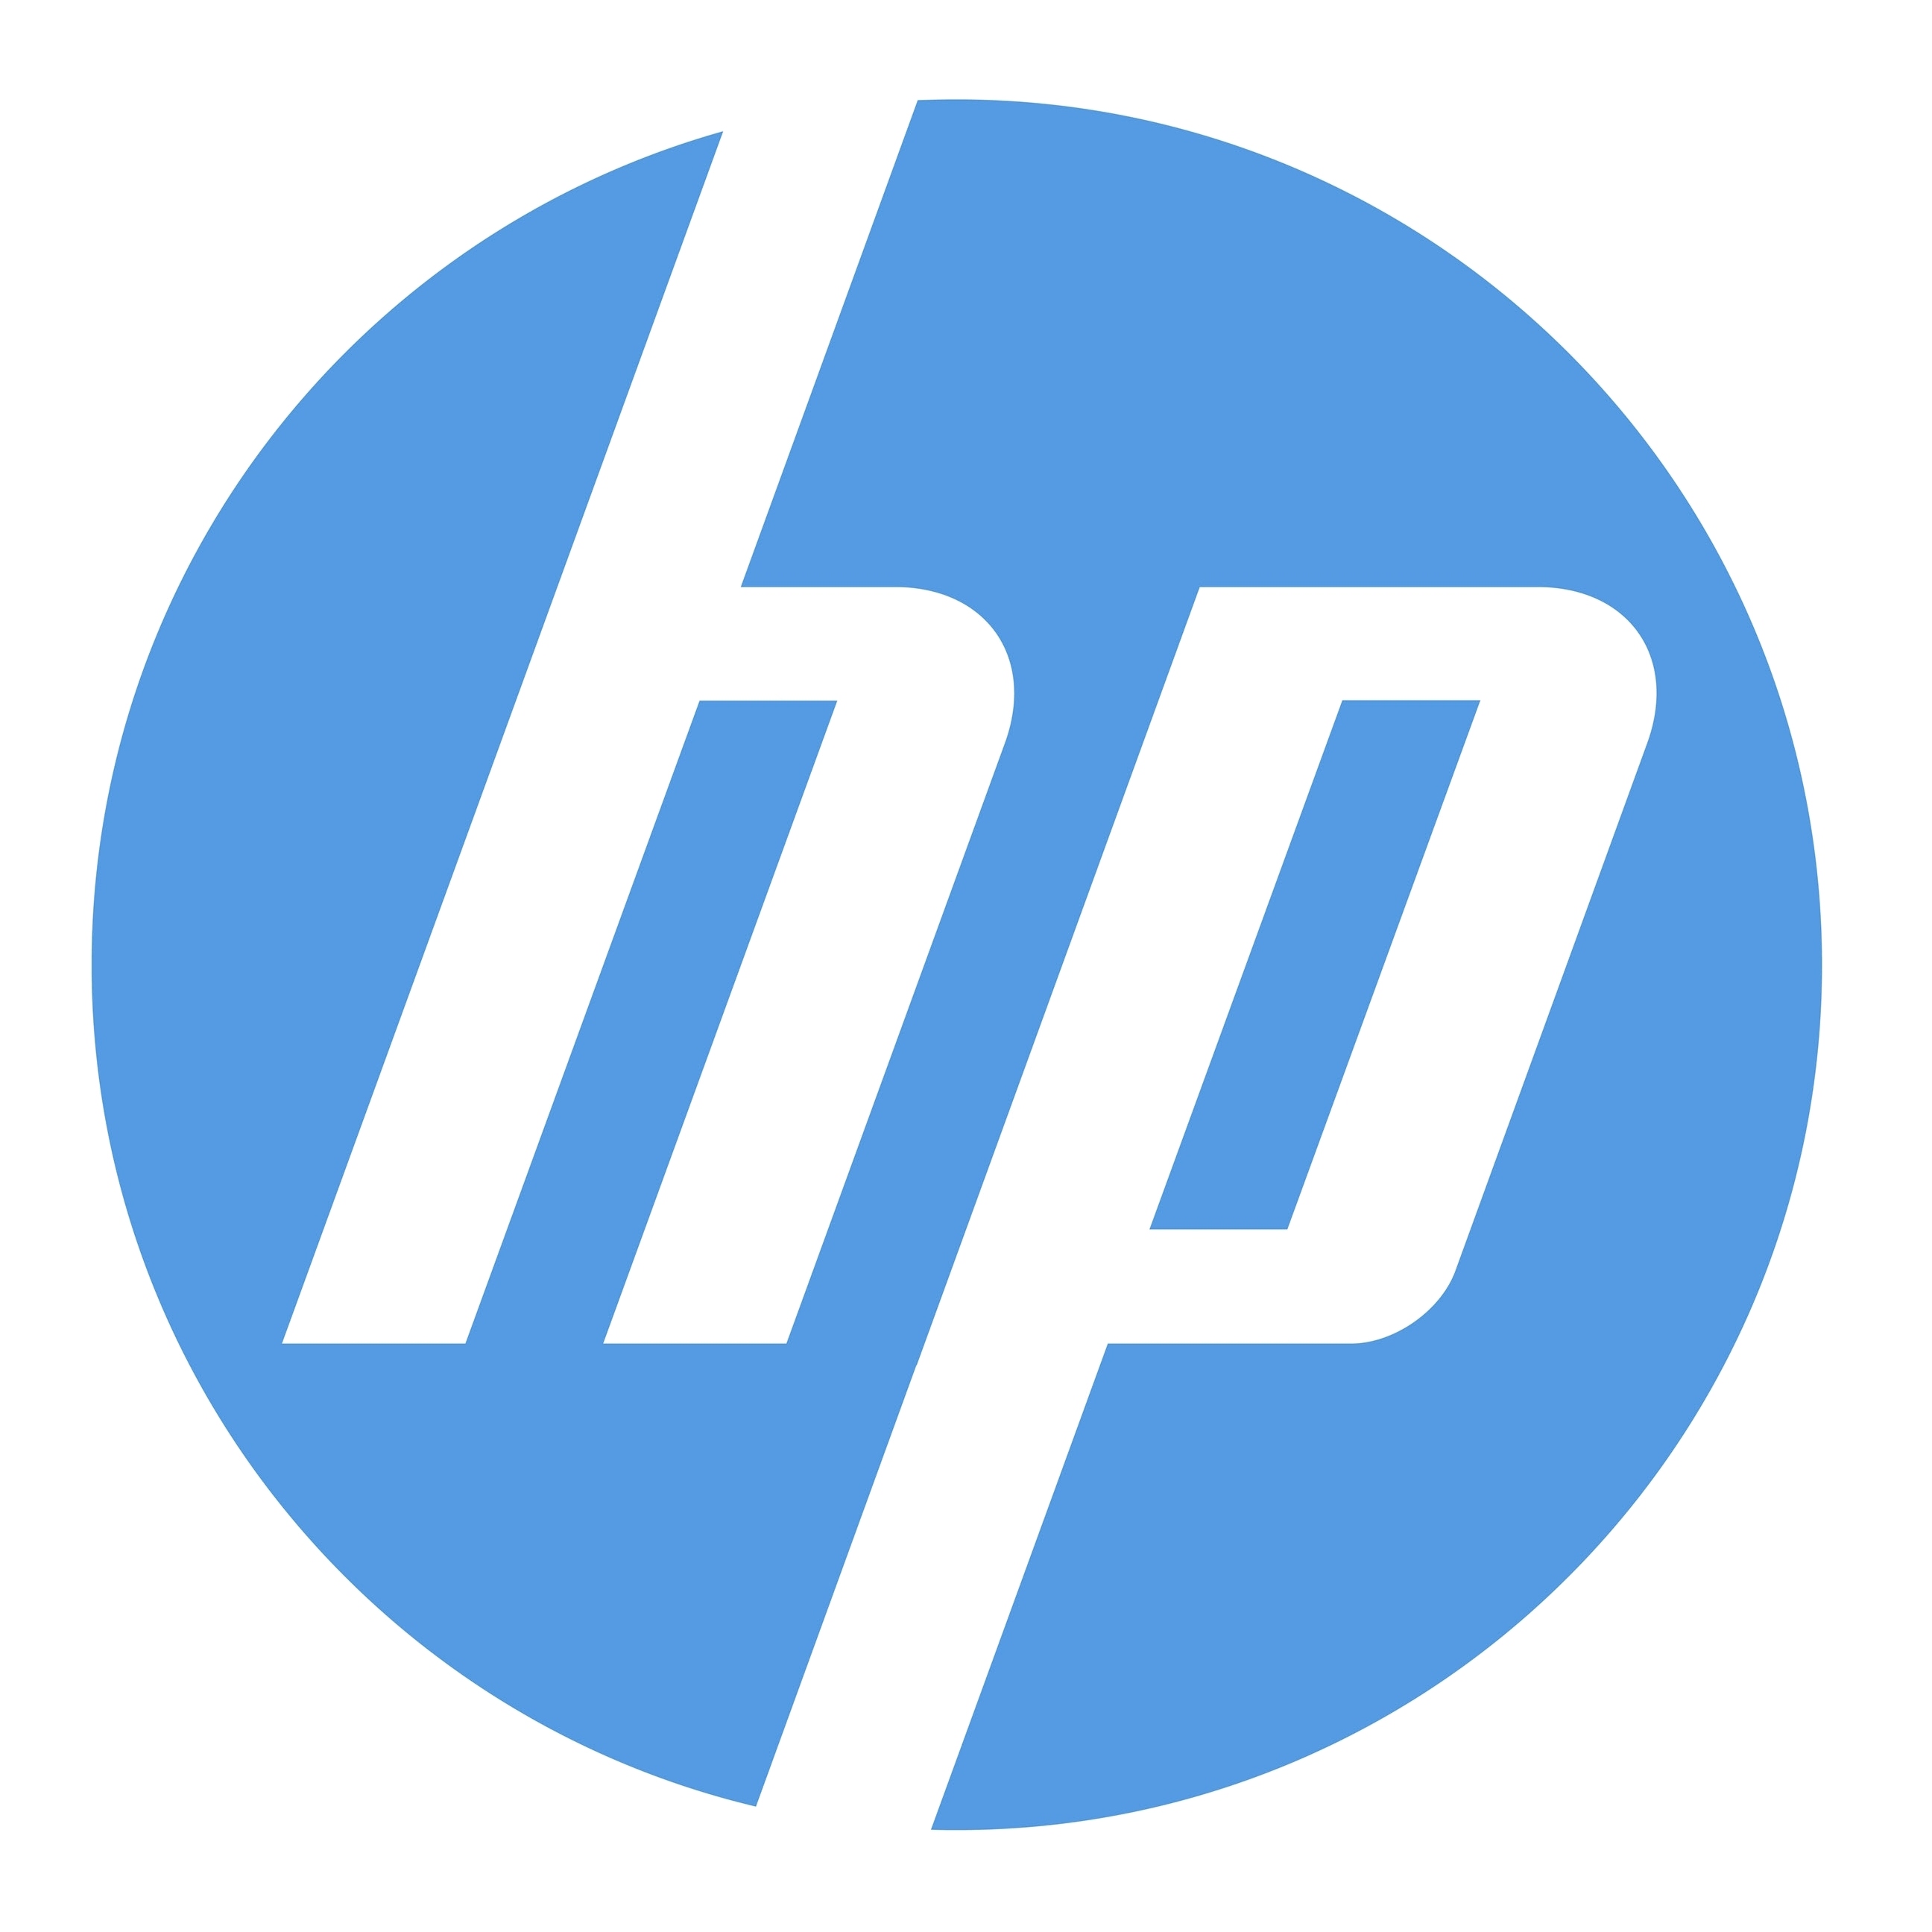 kisspng-hewlett-packard-enterprise-laptop-multi-function-p-hp-logo-5a737f872020c4.0820766415175187271316